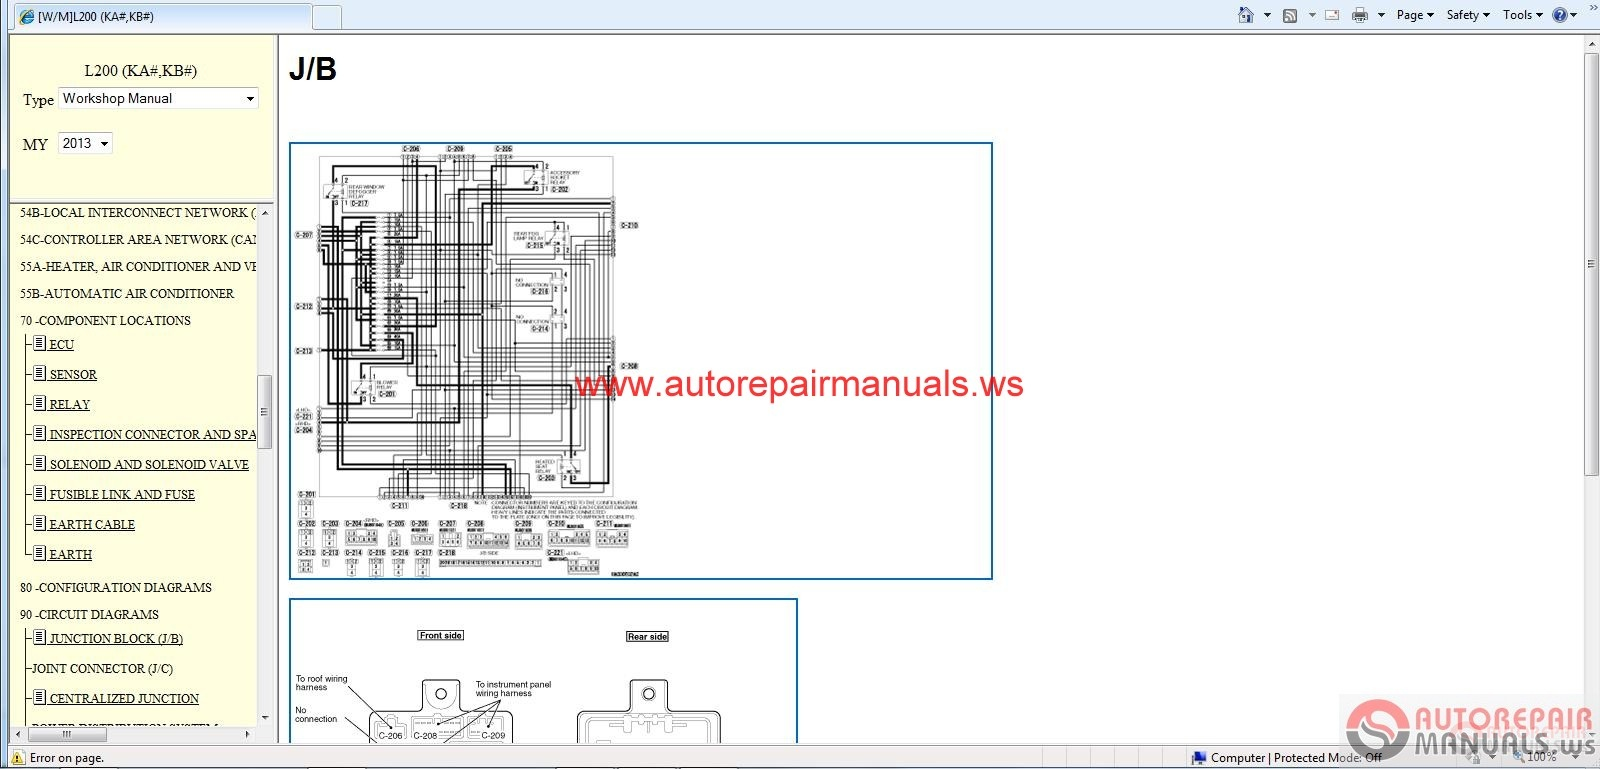 pajero 4m40 wiring diagram hot water heater thermostat mitsubishi l200 2013 workshop manual auto repair